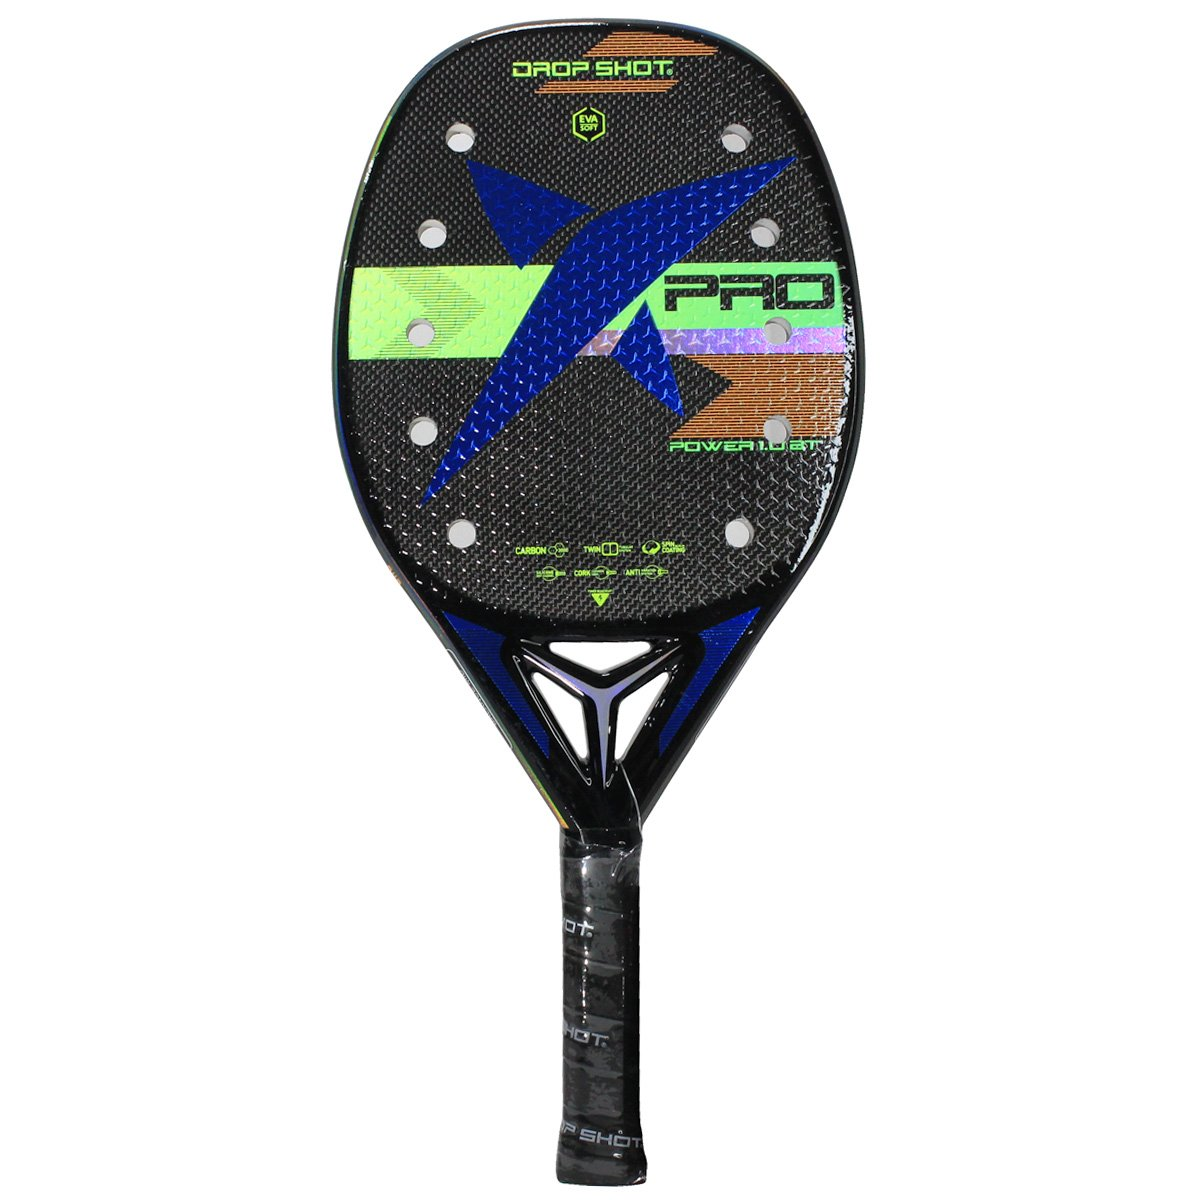 Raquete de Beach Tennis Drop Shot Power 1.0